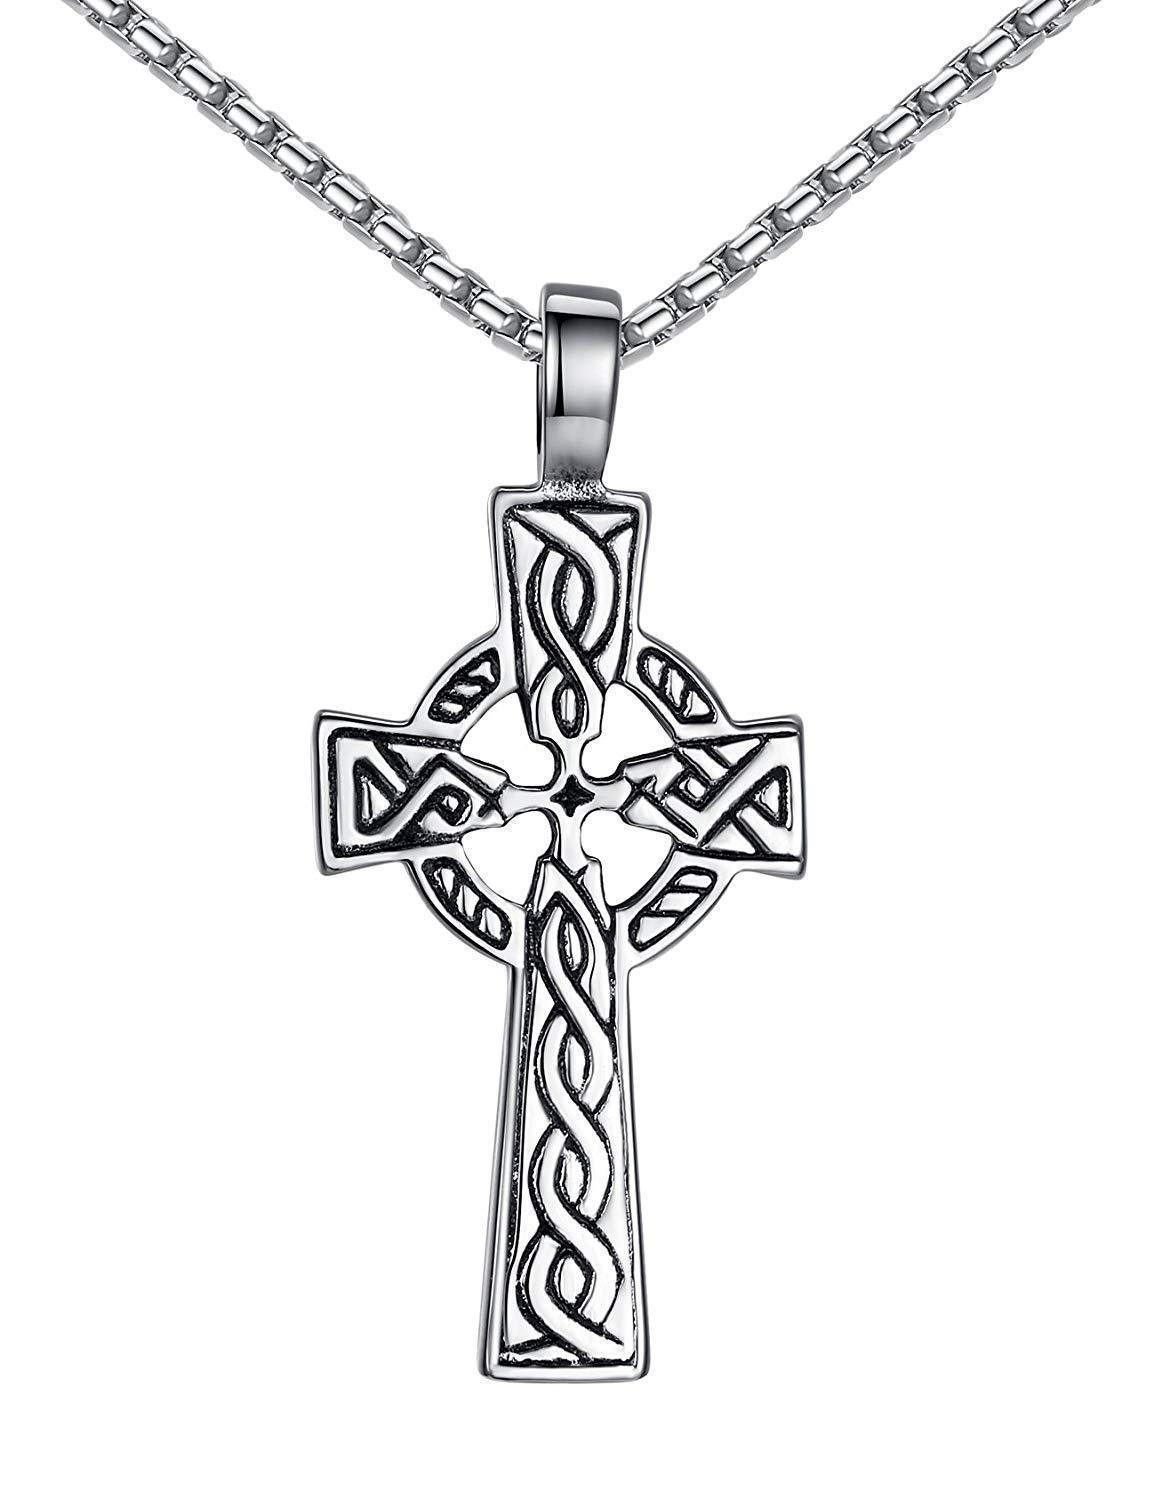 Aoiy Stainless Steel Celtic Cross Irish Knot Pendant Necklace Unisex 21 Link @ Sons of Odin™ - Men's